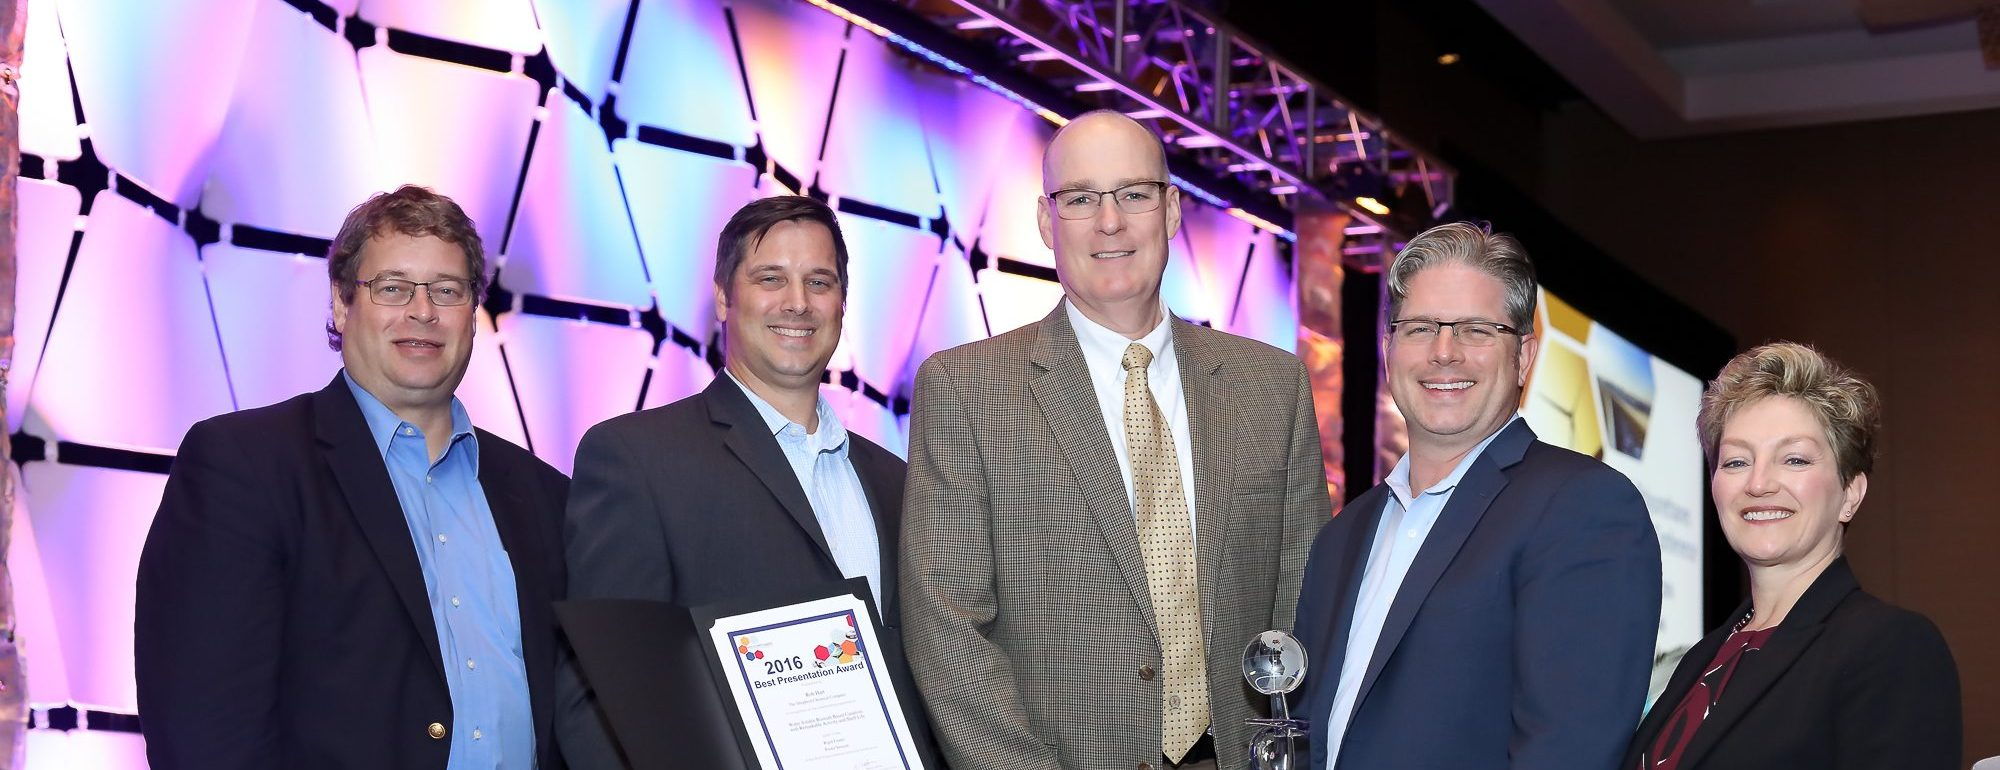 Shepherd Chemical Company Wins 2016 Polyurethane Innovation Award